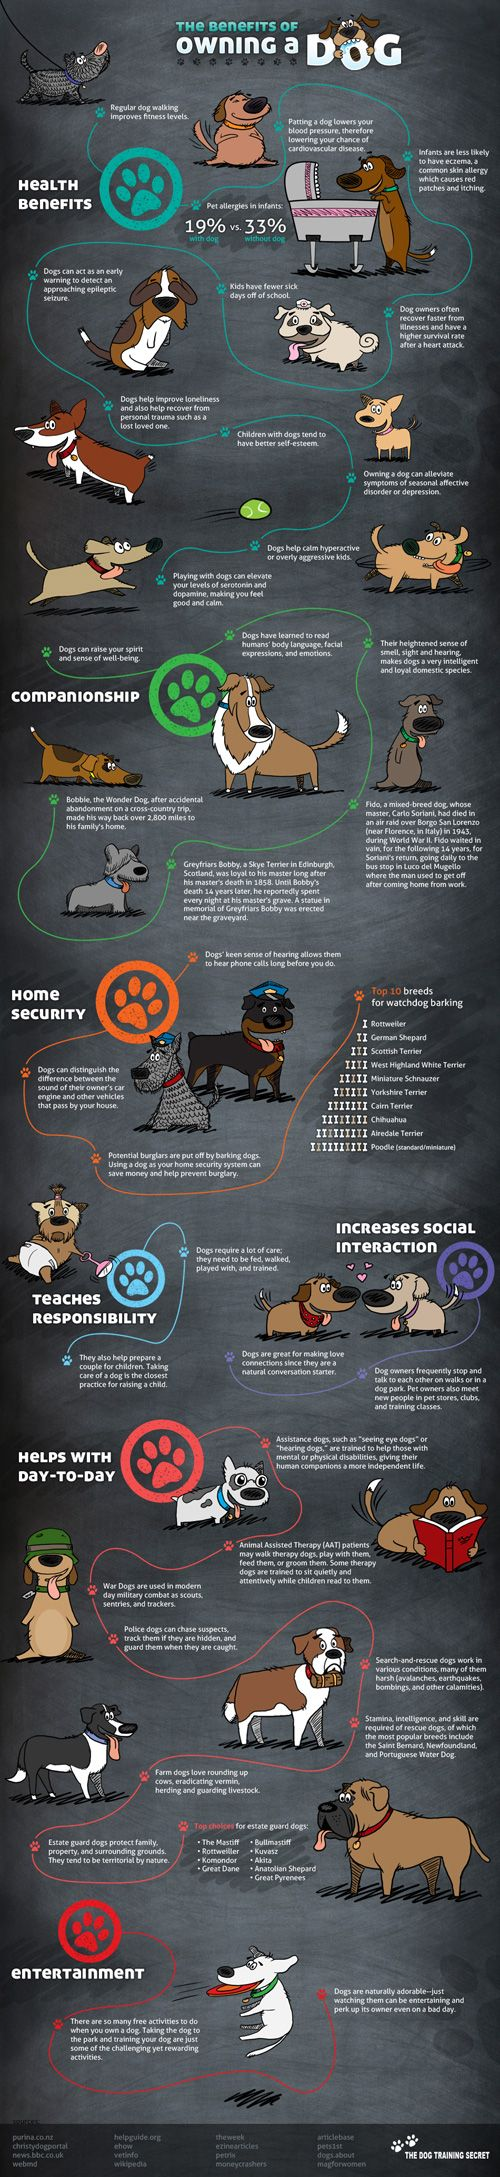 "Benefits of owning a dog Infographic Happy birthday!! From your friends at phoenix dog in home dog training""k9katelynn"" see more about Scottsdale dog training at k9katelynn.com! Pinterest with over 18,800 followers! Google plus with over 123,000 views! You tube with over 400 videos and 50,000 views!! Serving the valley for 11 plus years"